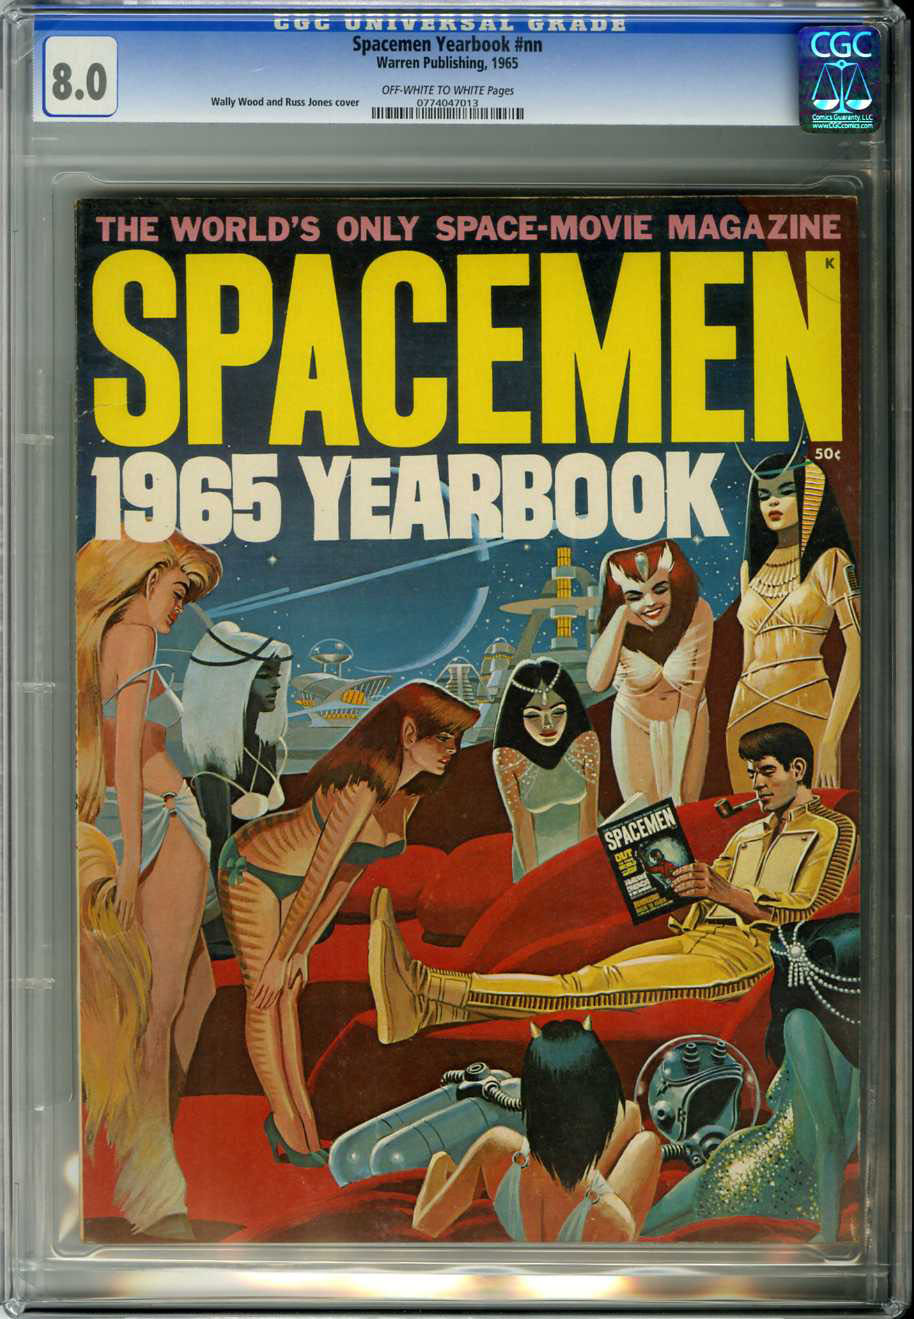 SPACEMAN 1965 YEARBOOK (1965) CGC VF 8.0 OWW Pages / WALLY WOOD/RUSS JONES COVER